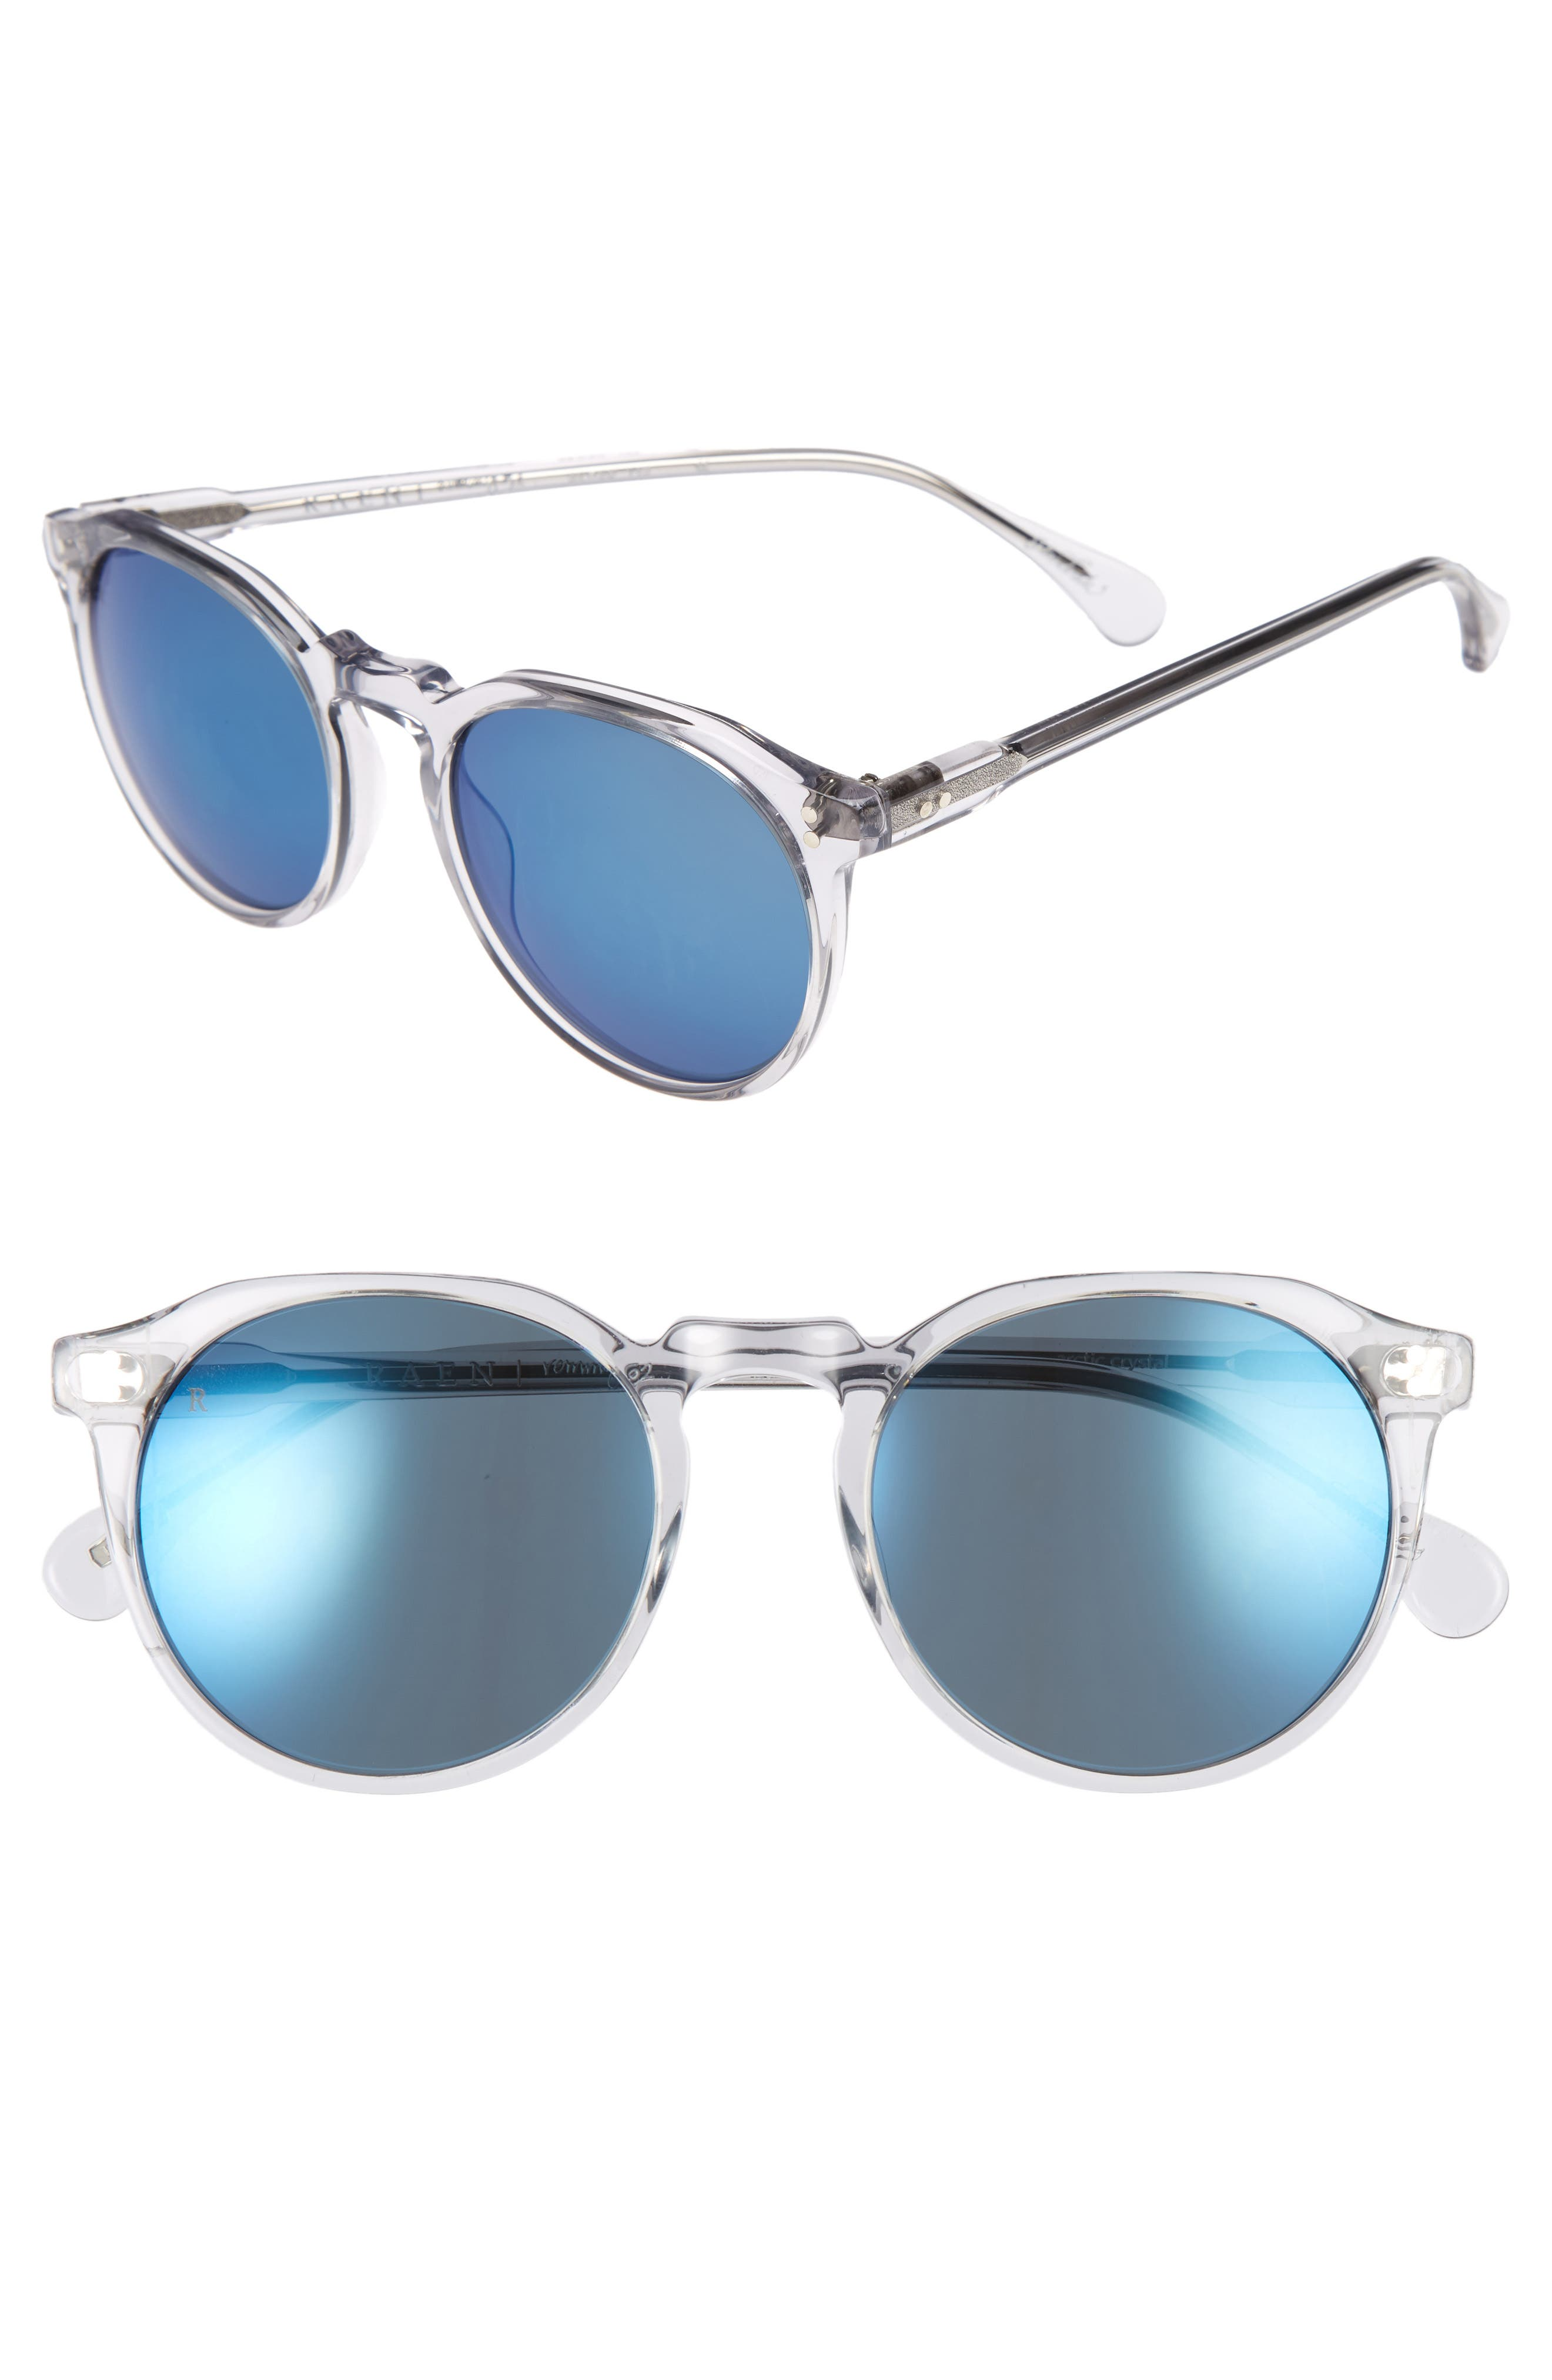 Remmy 52mm Sunglasses,                         Main,                         color, Artic Crystal